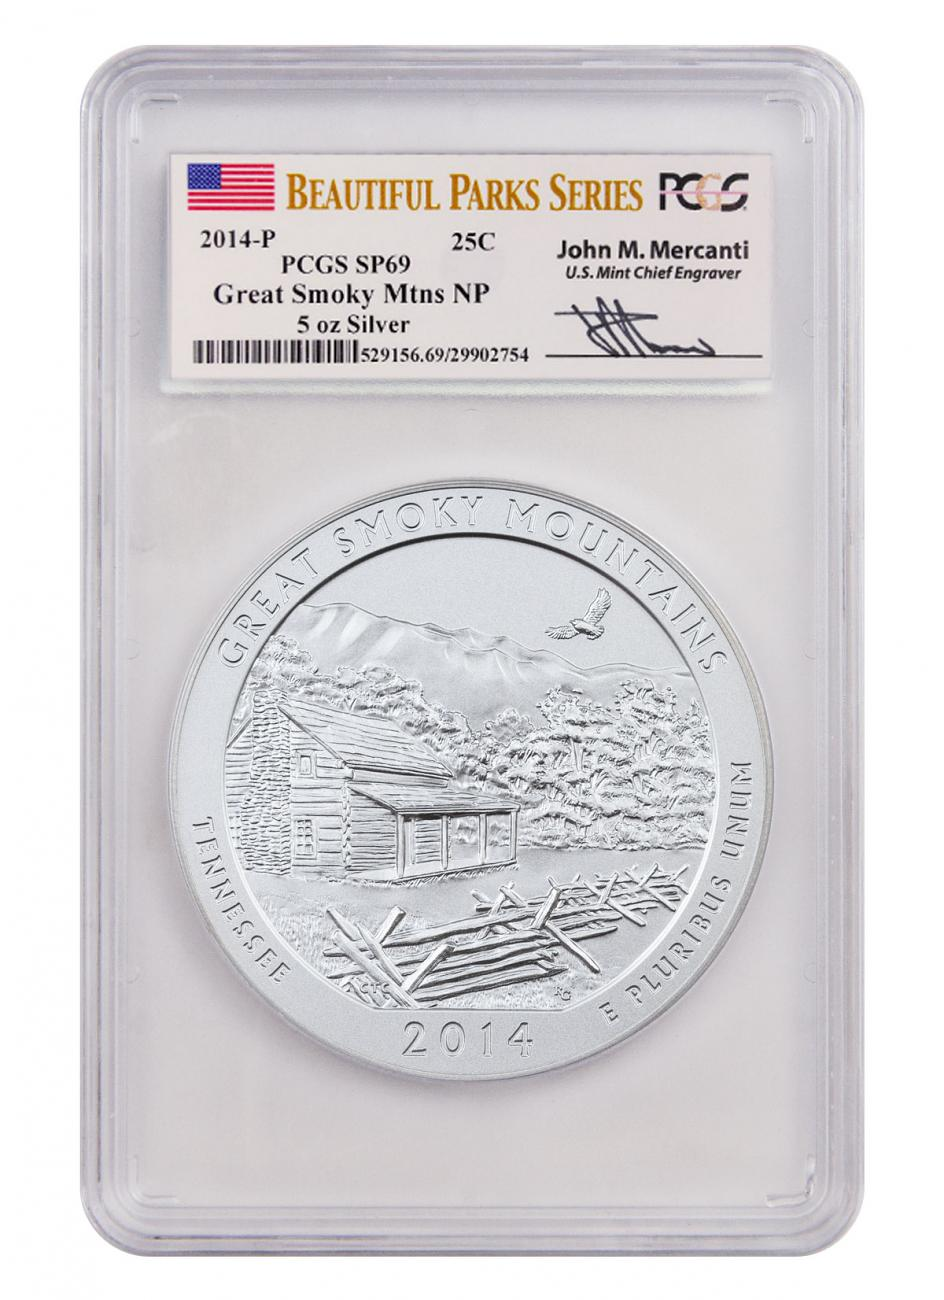 2014-P Great Smoky Mountains 5 oz. Silver America the Beautiful Specimen Coin PCGS SP69 (Mercanti Signed Park Series Label)